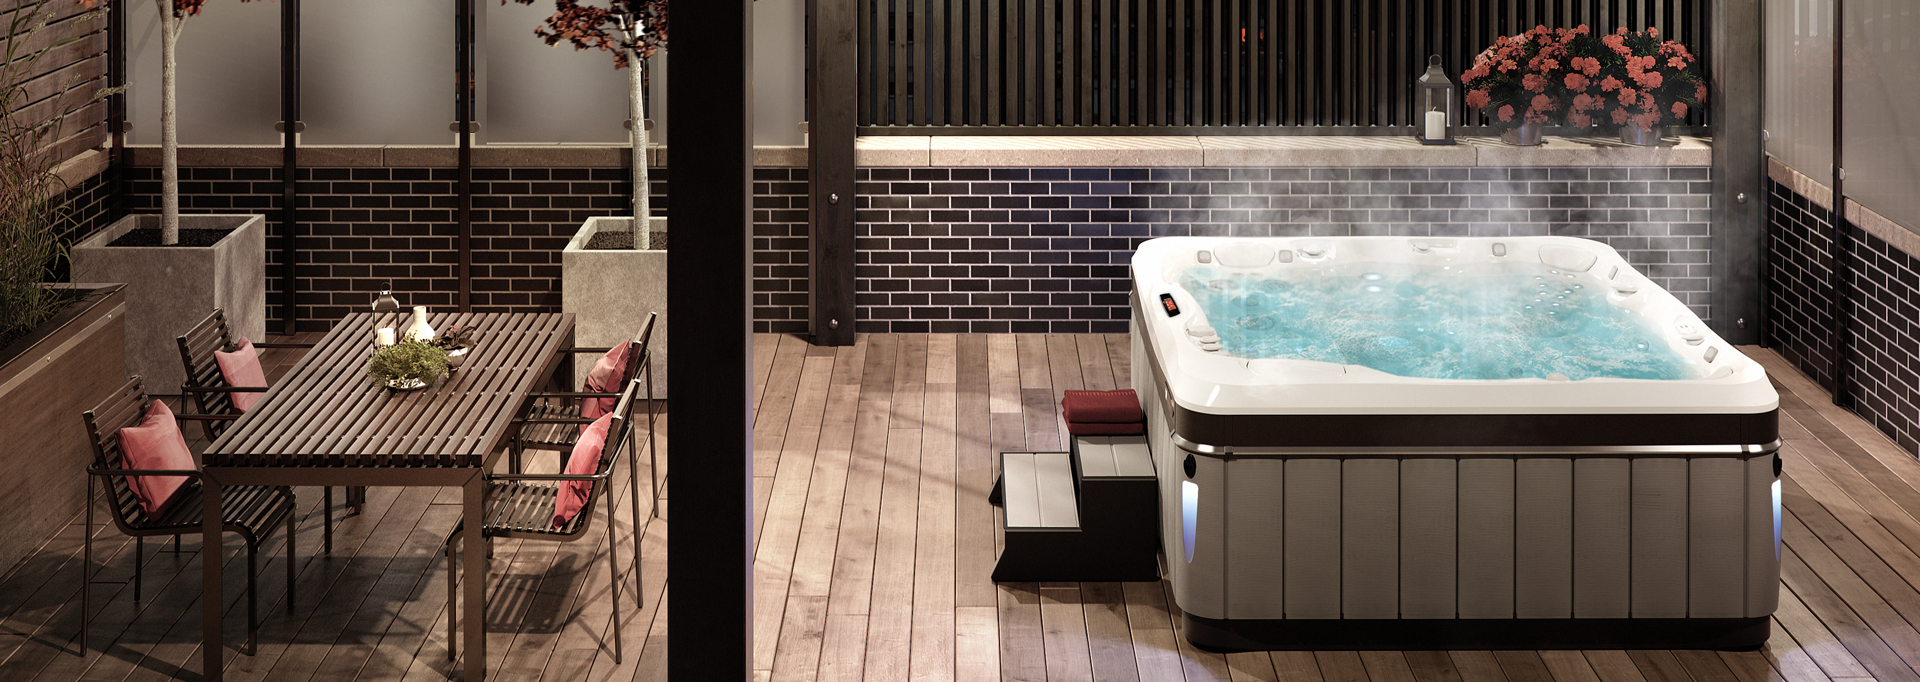 Finest Luxury Spas & Hot Tubs